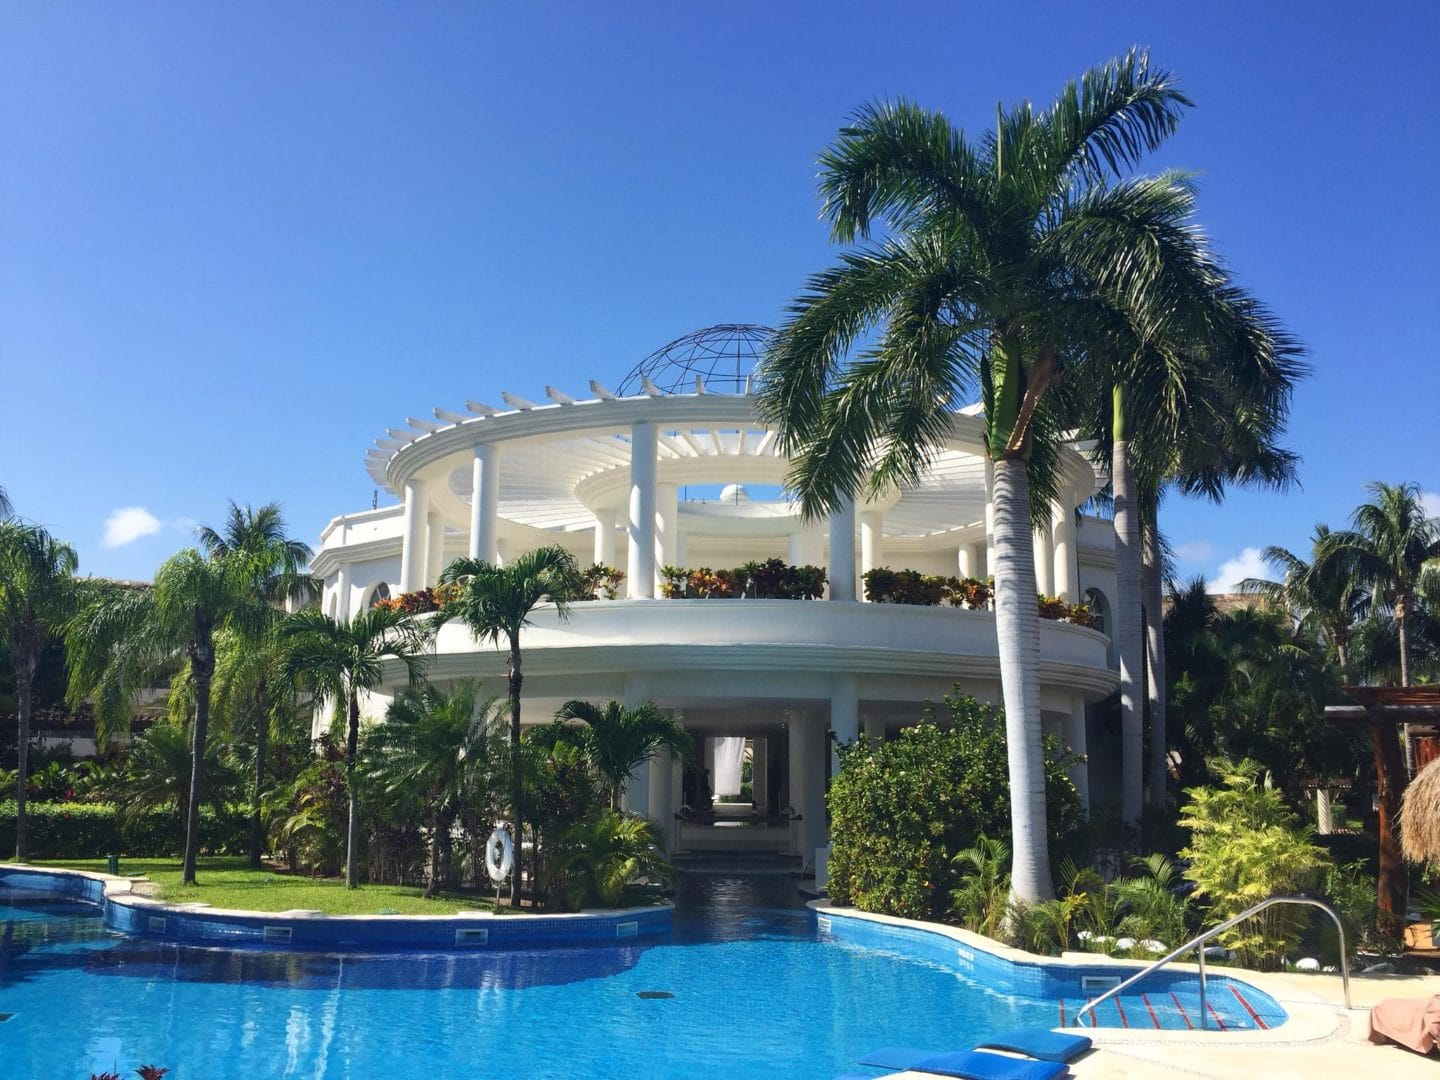 Excellence Riviera Cancun Spa